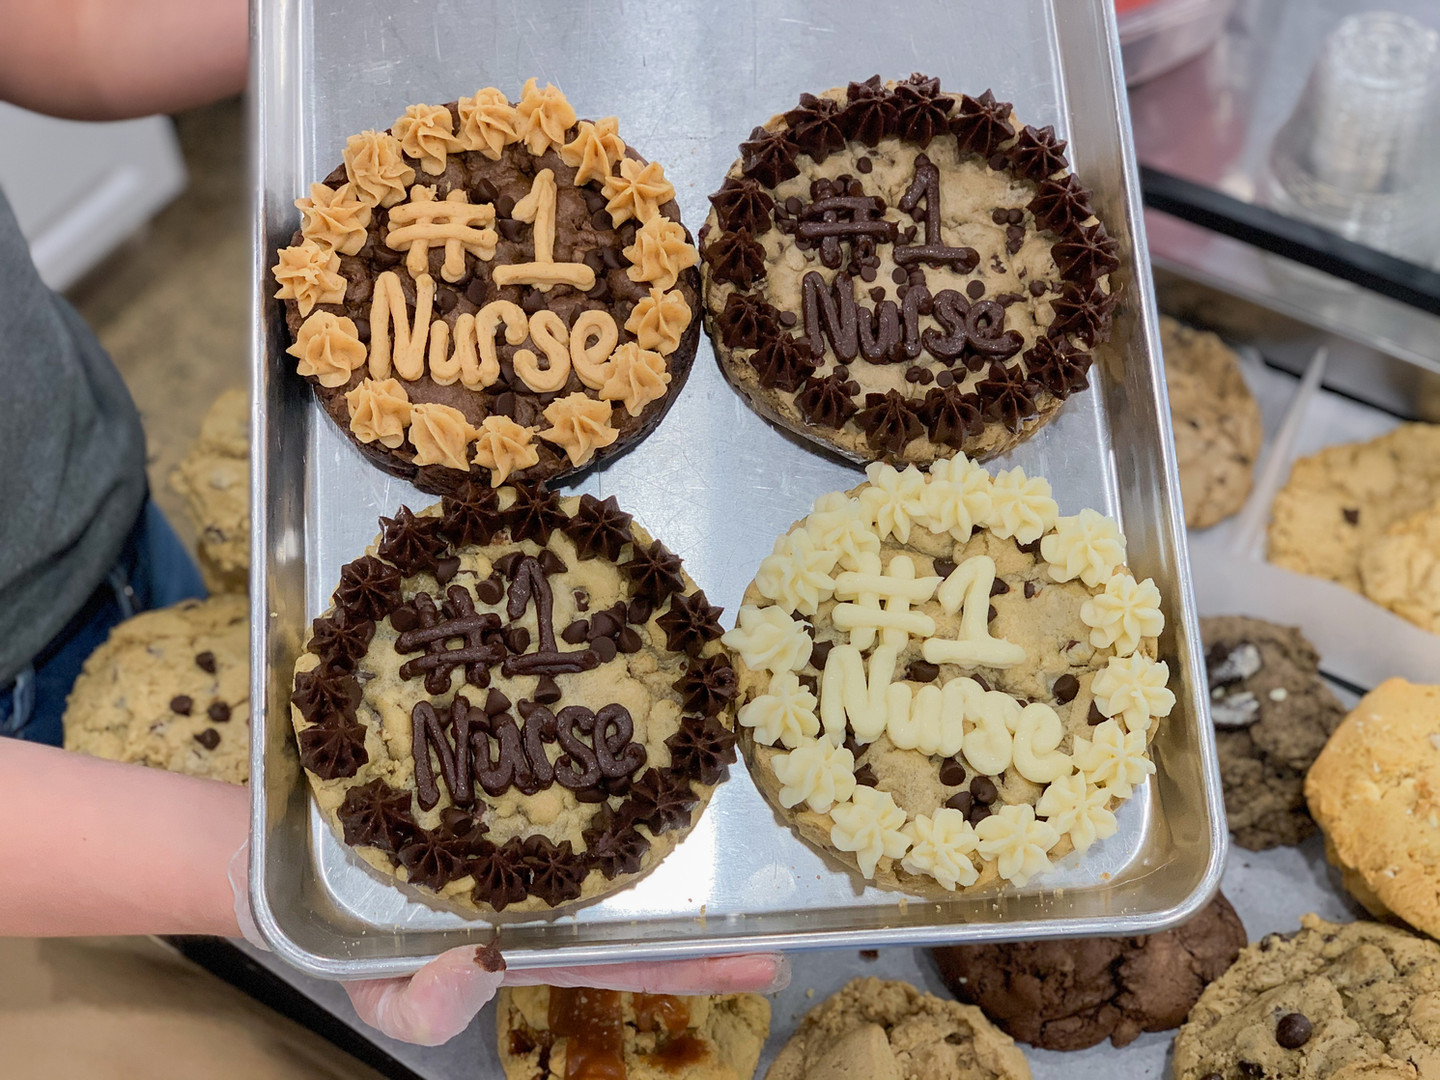 Our Mini Cookies Cakes! Great for a date night in together with your partner. The perfect way to say thank you.